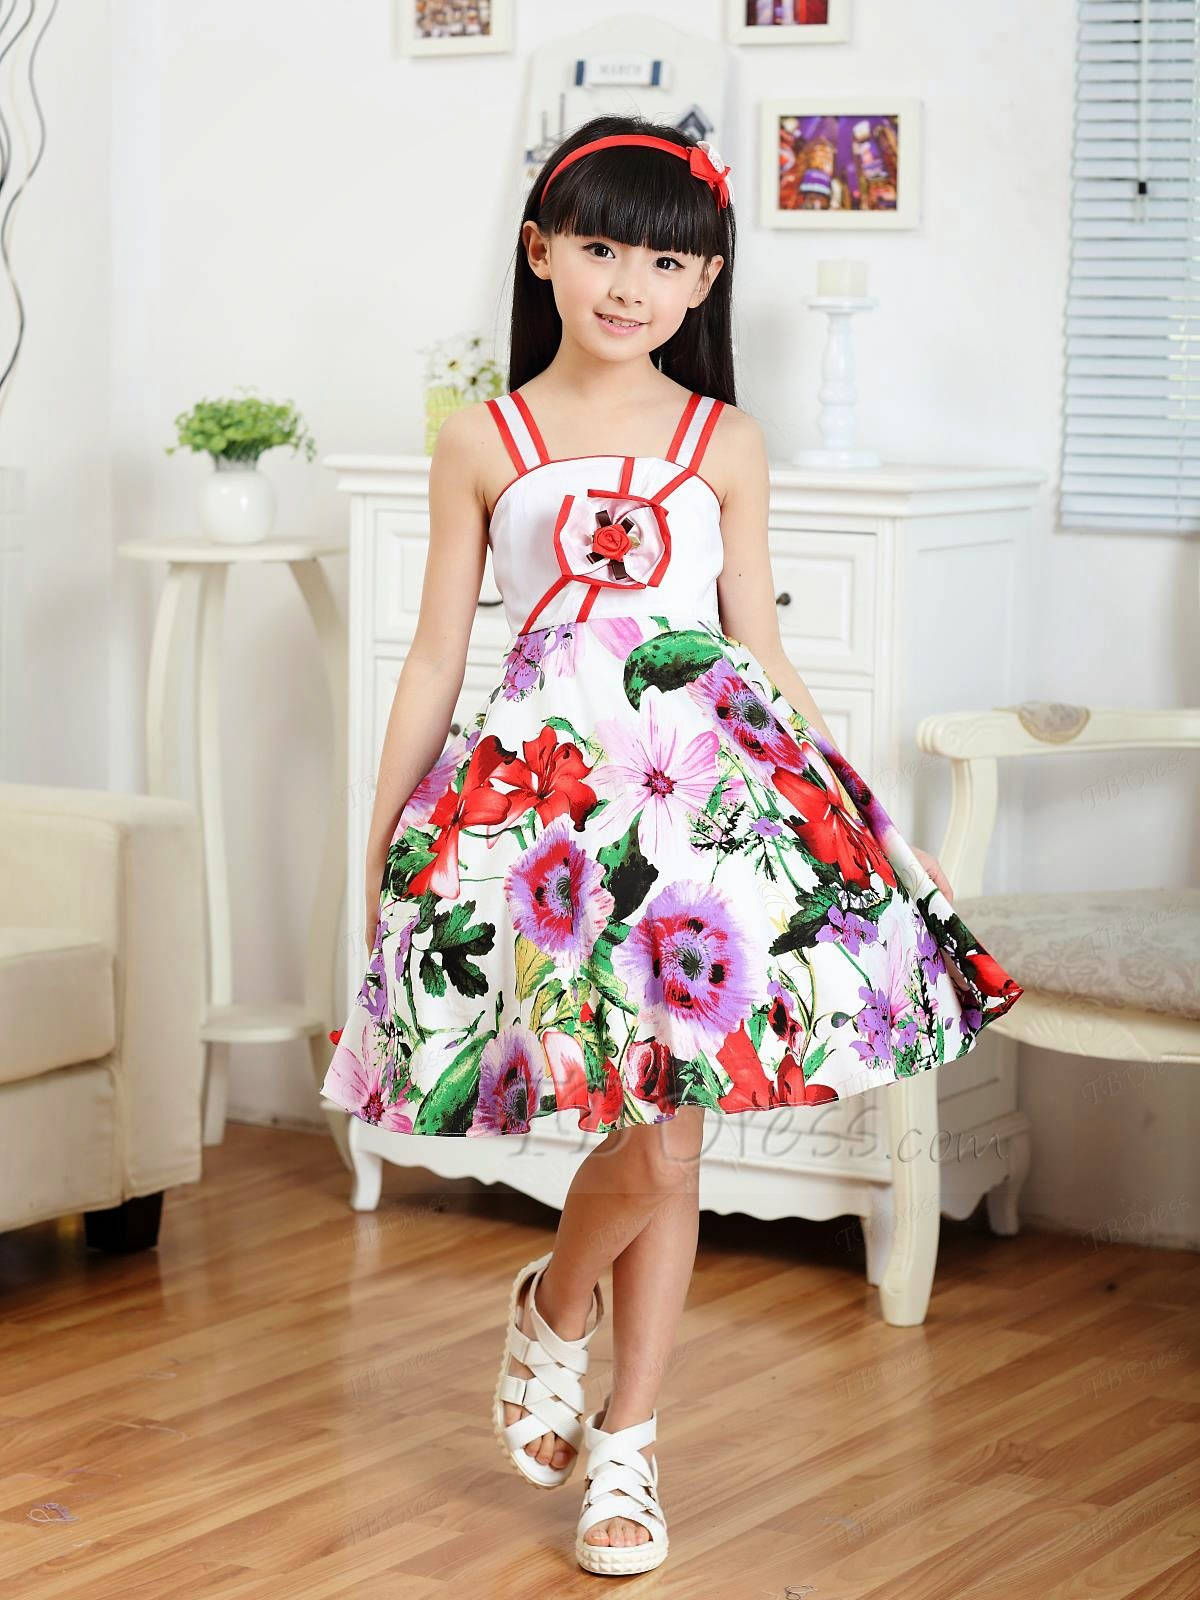 http://www.tbdress.com/topic/easterintbdress/